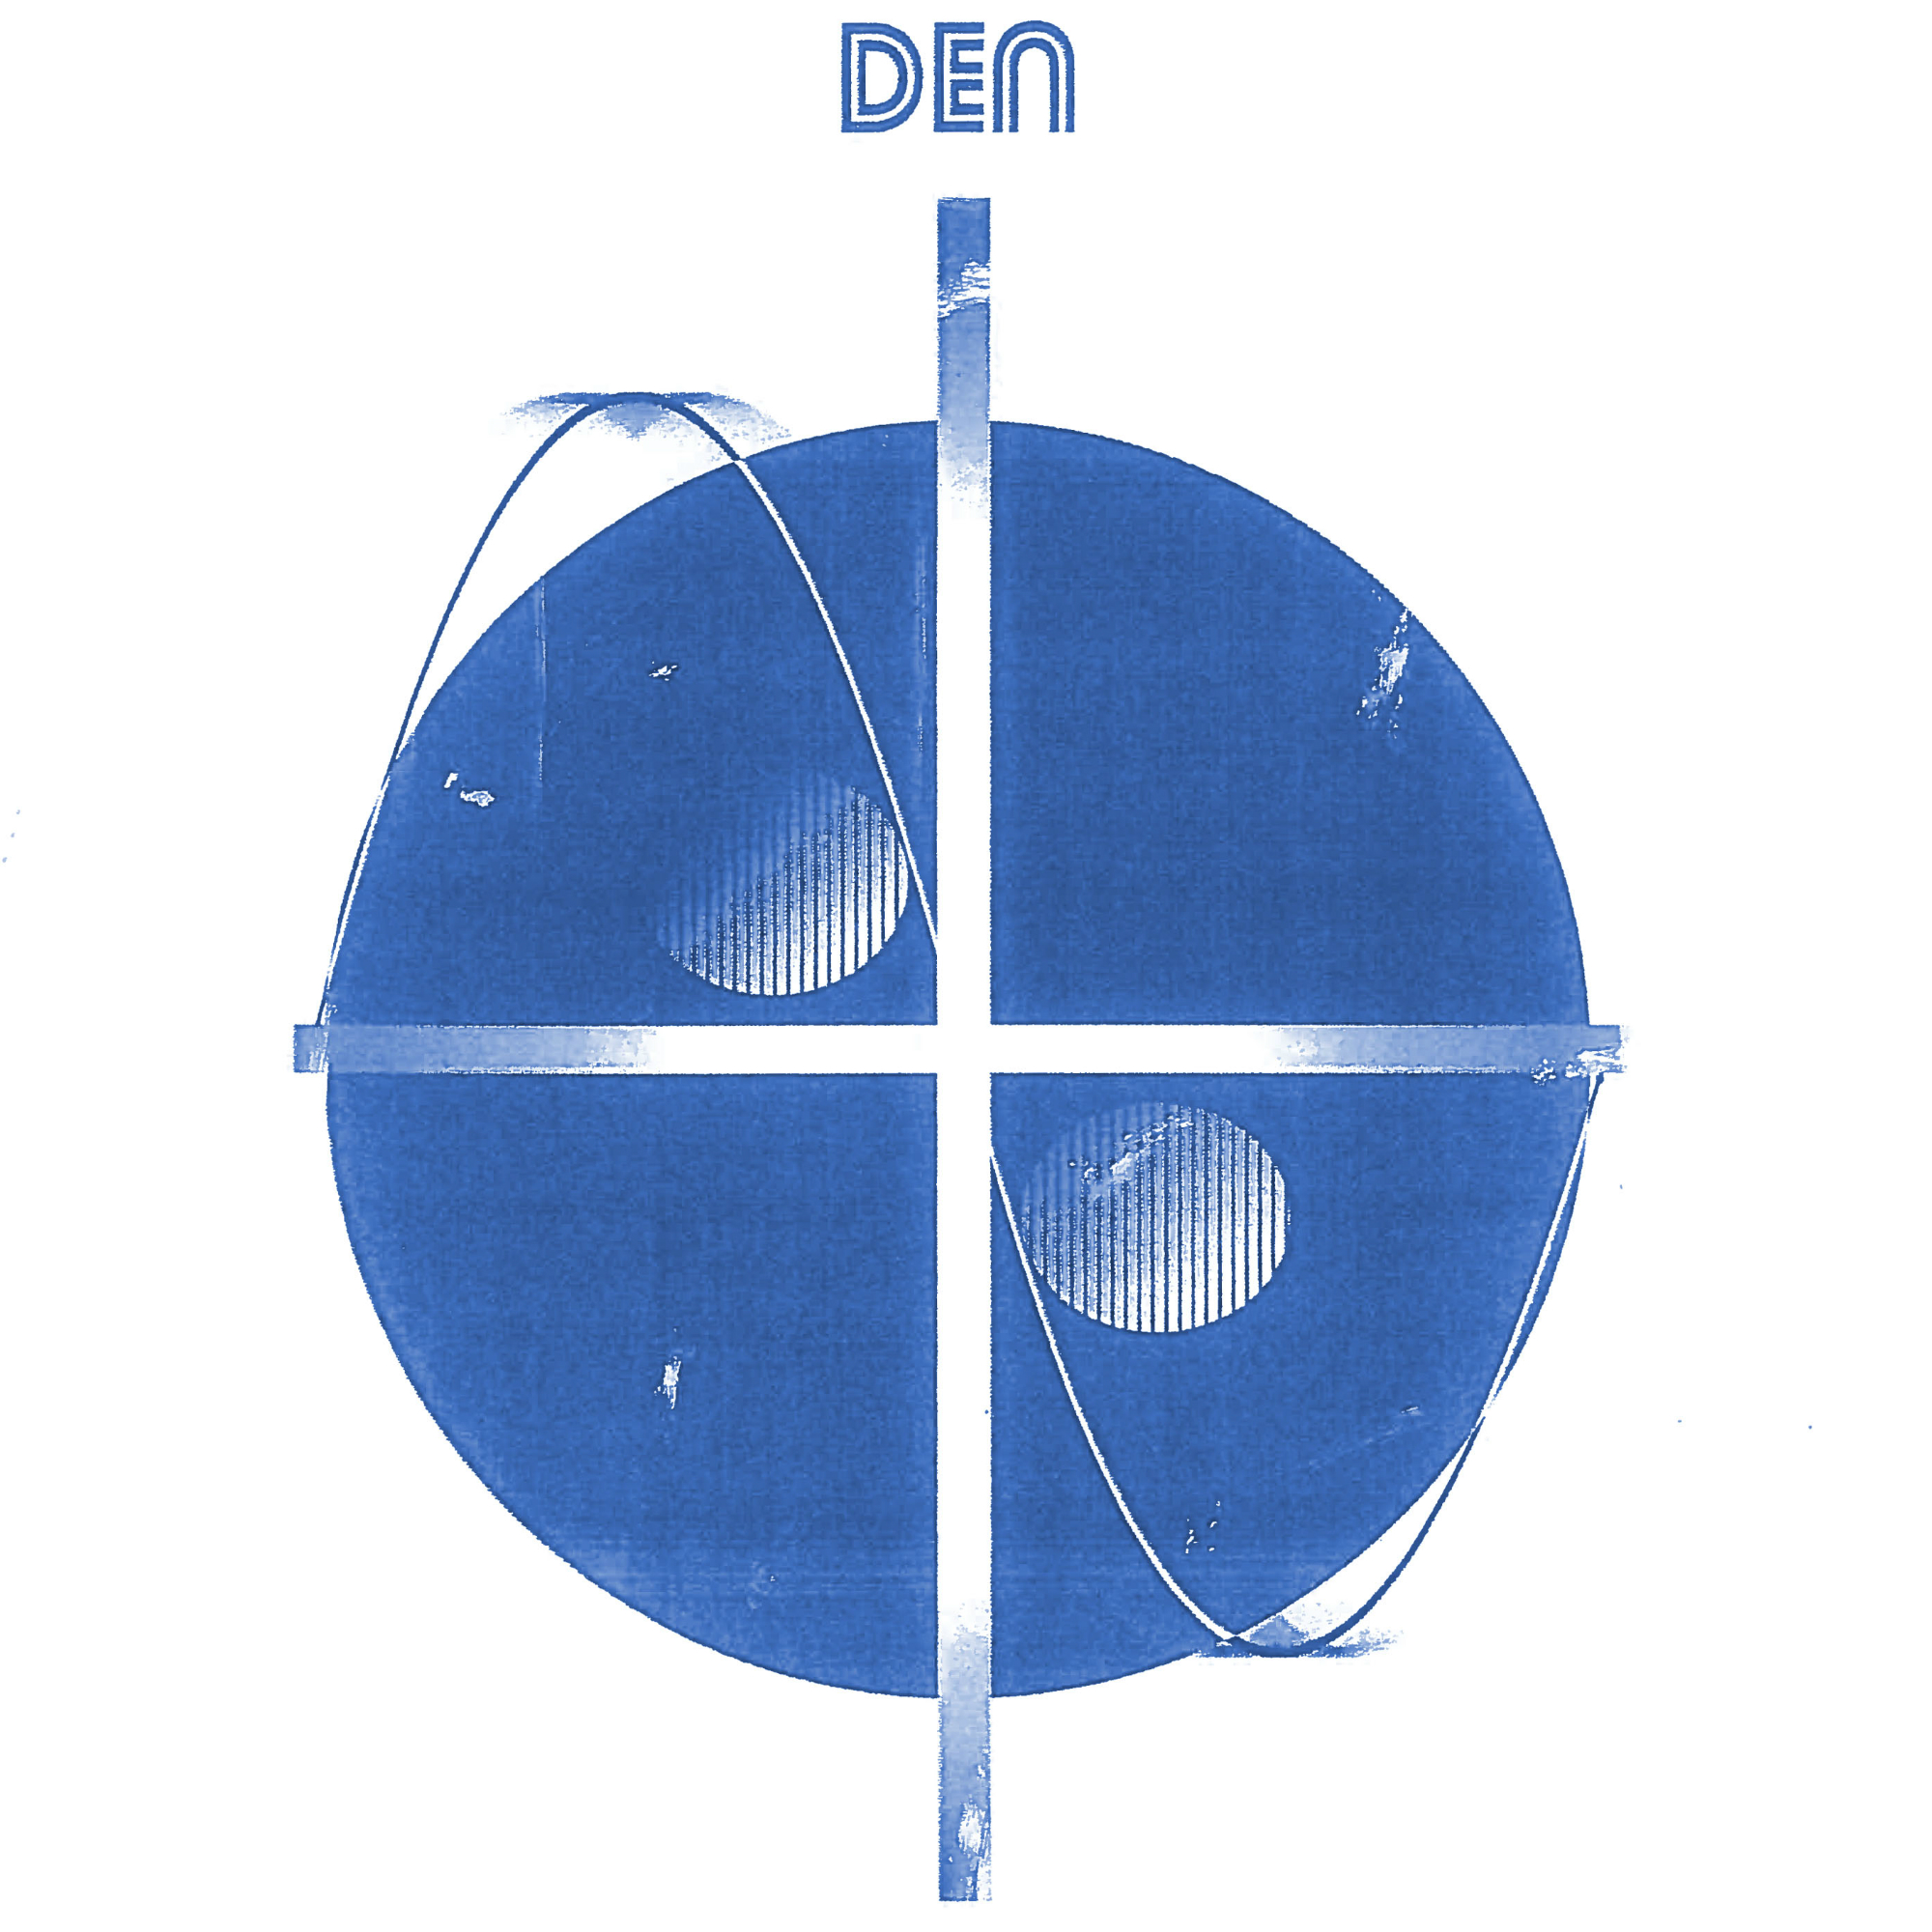 DEN - DIGITAL EP